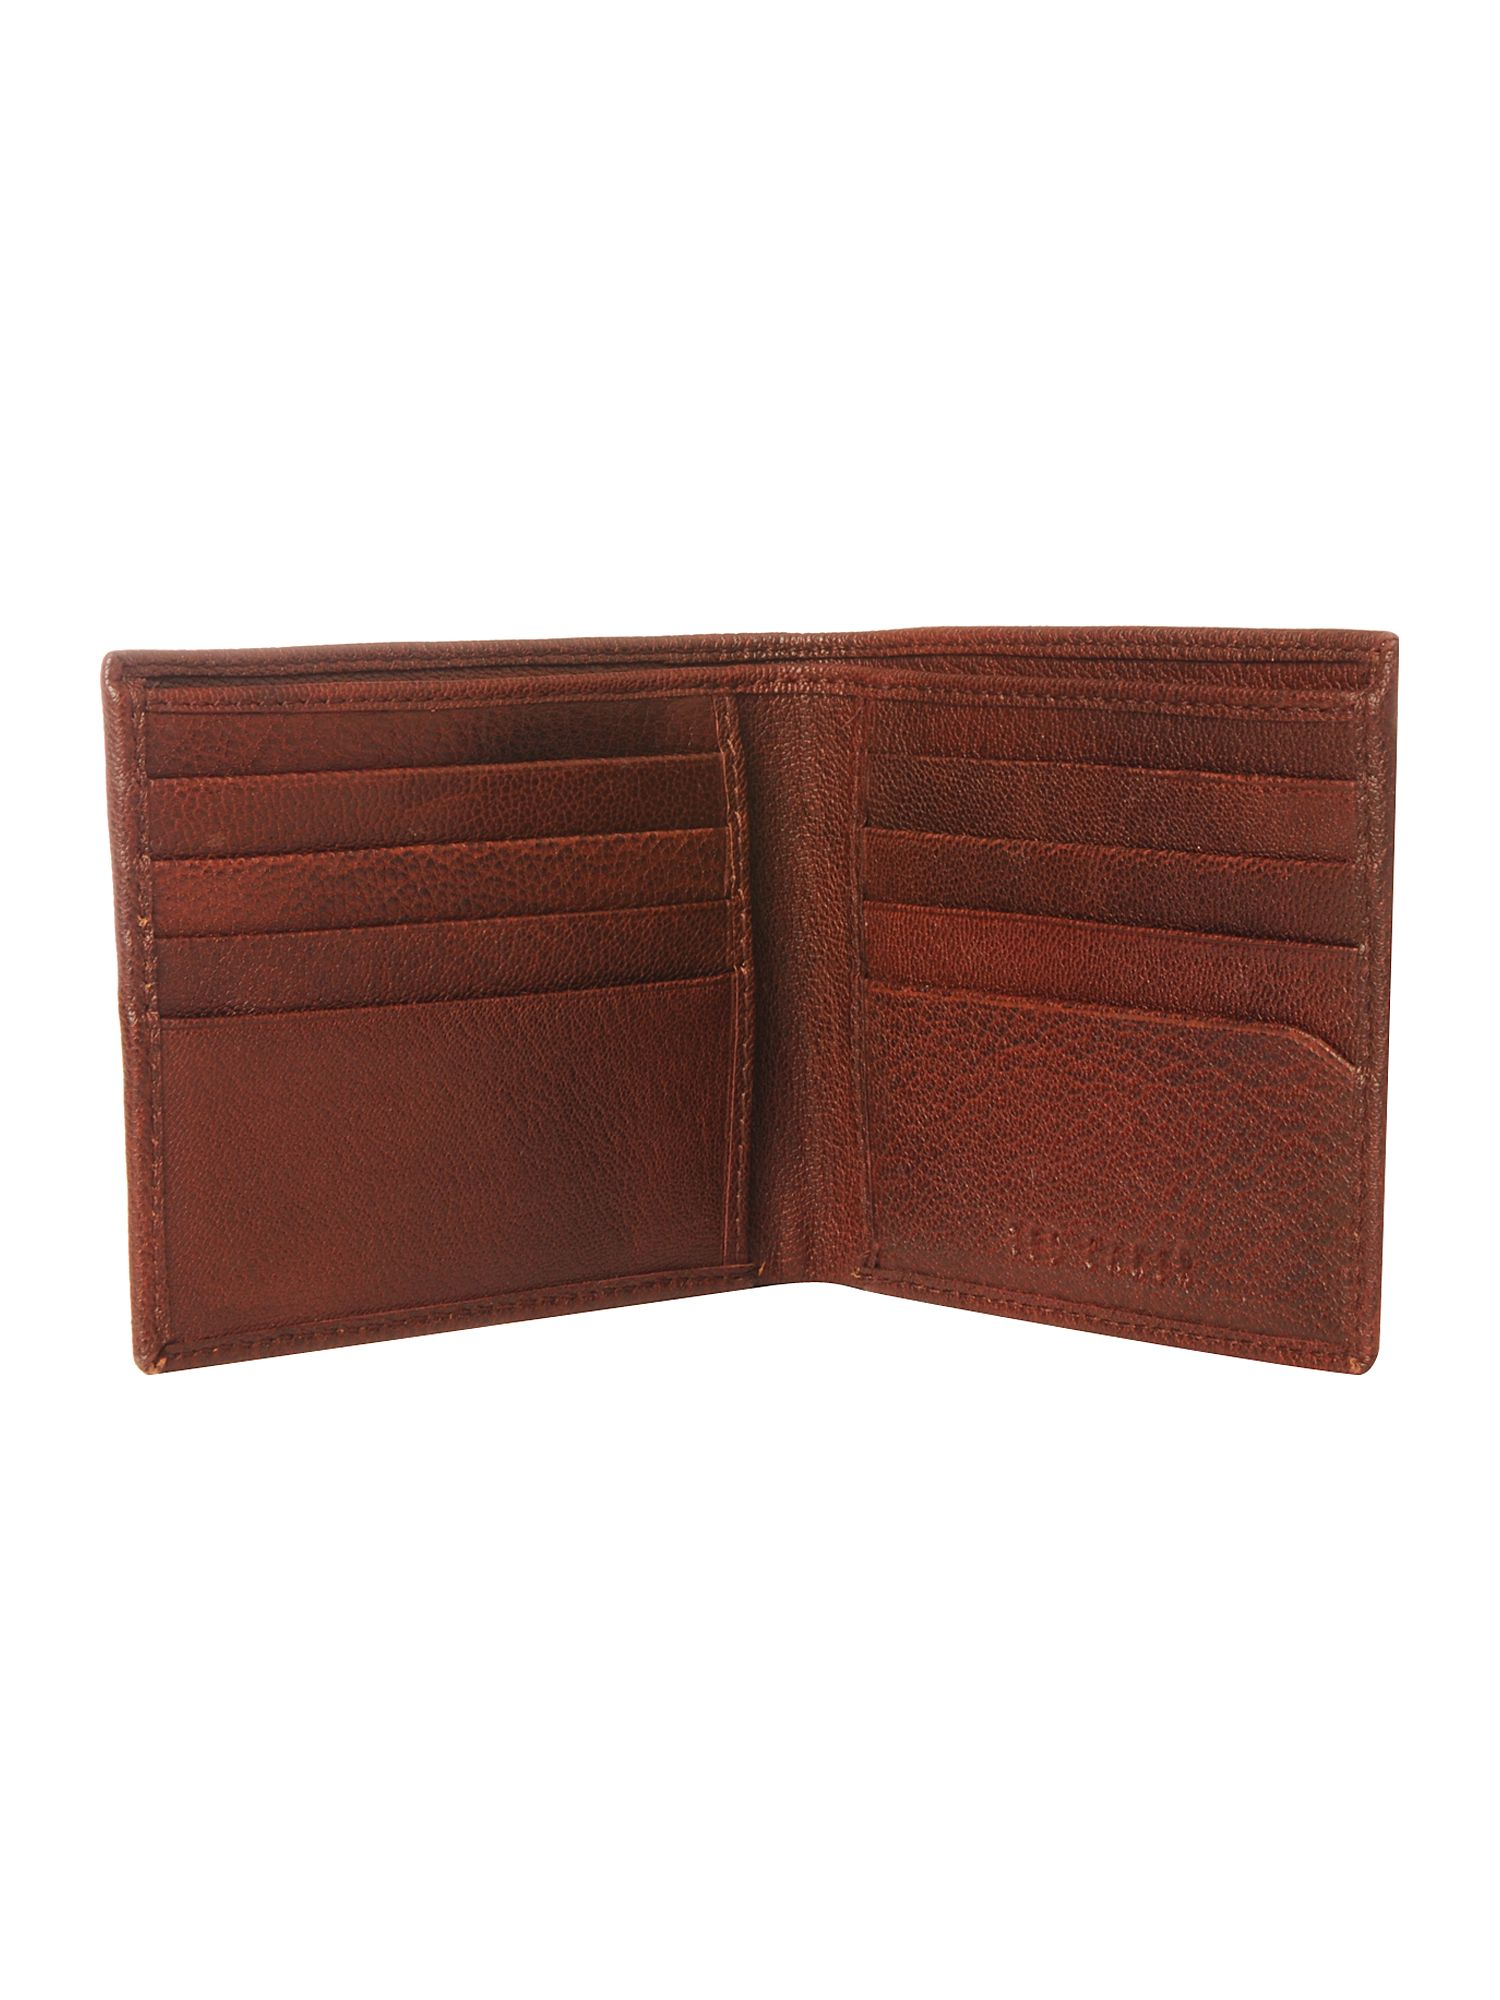 Ted Baker Burnished bilfold wallet Chocolate product image